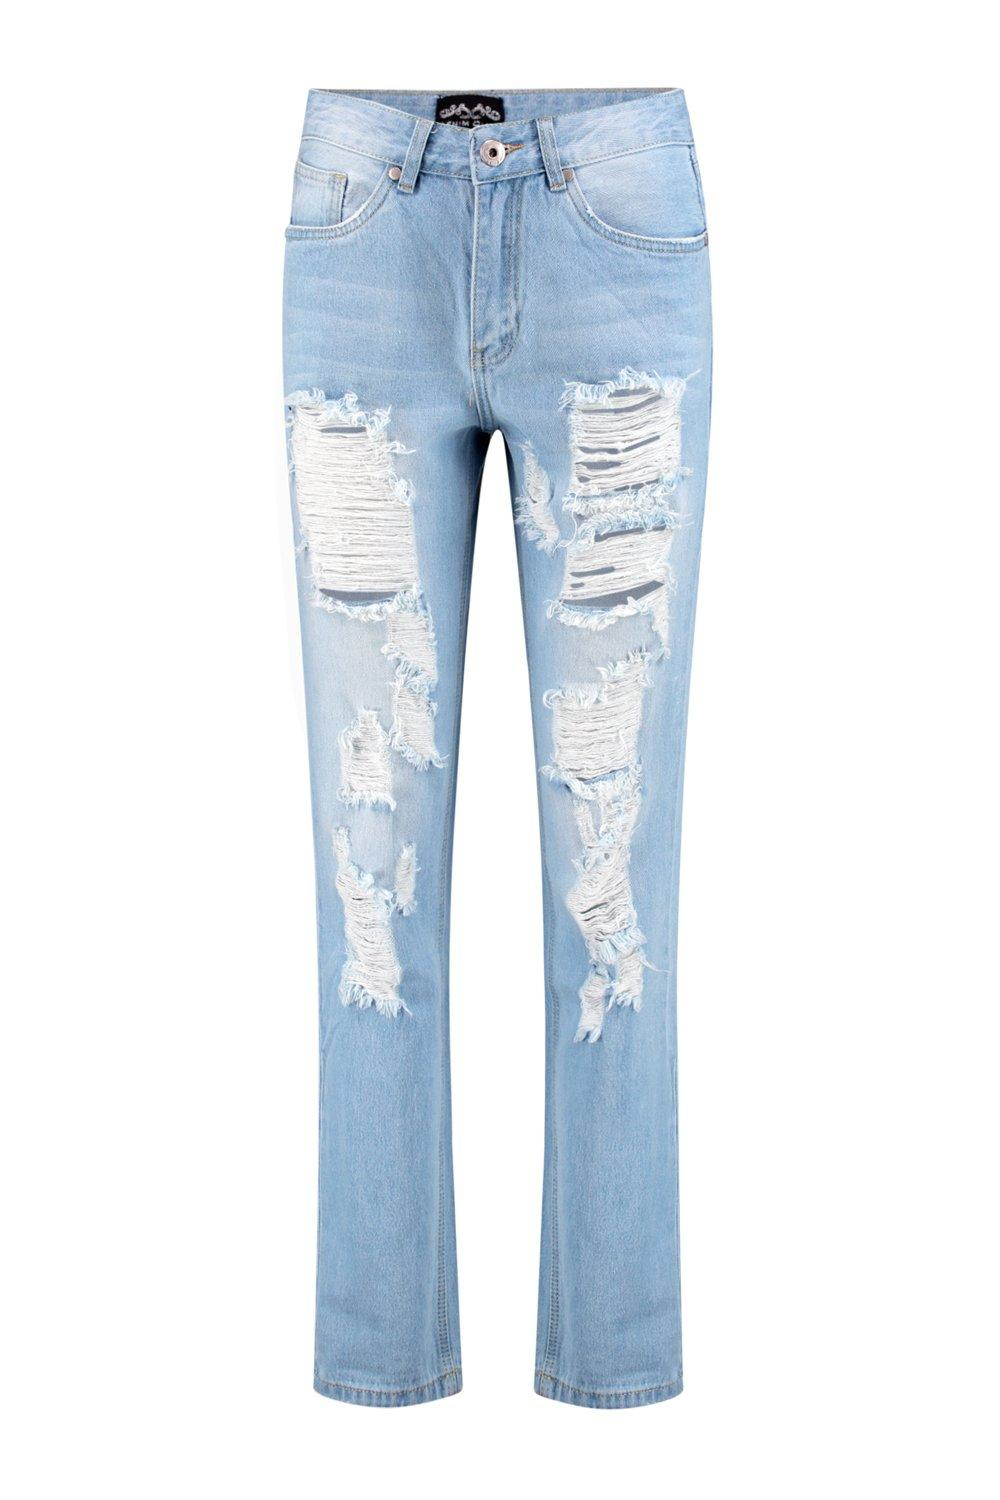 Boohoo Denim Molly Low Rise Distressed Boyfriend Jeans in Blue